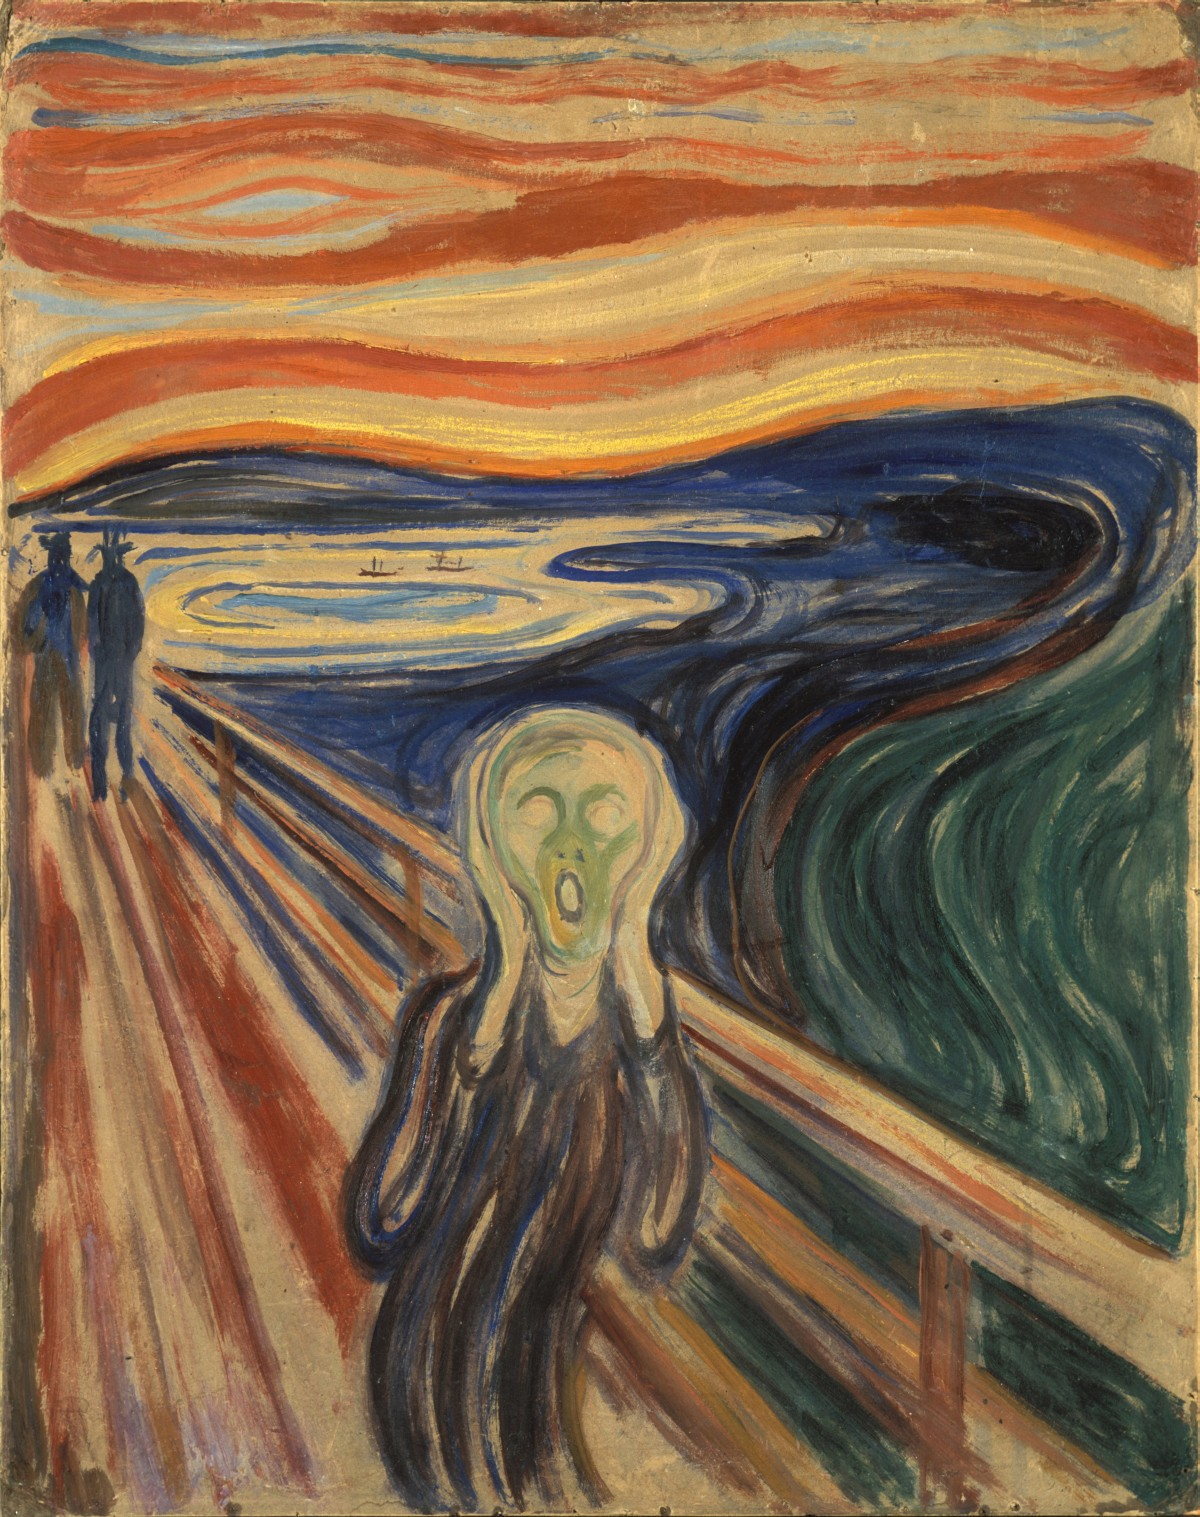 Dipinto su un supporto di cartone con olio, tempera e pastello, 'L'urlo', del pittore norvegese Edvard Munch, è diventato l'icona indiscutibile dell'angoscia e dello smarrimento dell'uomo moderno. L'opera è il frutto di una serie di eventi, tra cui un attacco di panico che colse l'artista durante una passeggiata con gli amici e, secondo gli esperti, anche l'eruzione di un vulcano lontano. Cult stories Edvard Munch The Scream painting art modern man anxiety Norway cult stories cultstories cinema cult story cultstory art culture music ipse dixit aneddoti citazioni frasi famose aforismi immagini foto personaggi cultura musica storie facts fatti celebrità vip cult spettacoli live performance concerto photo photography celebrity giornalismo scrittura libri genio pop icon attore cantante solista pittrice scultore attrice star diva sex symbol mito munchies munchmuseet munchausen munchkin munchen airport munchkin cat munch og van gogh munchkin katt munchausen syndrom munchmuseet oslo munch museum munch ranet munchmuseet priser munch åsgårdstrand munch vgs munch museet billetter munch madonna munch bilder munch utstilling munch anxiety munch aske munch aula munch auksjon munch and van gogh munch aulaen munch atelier ekely munch atelier munch albertina munch art a munchkin welcome - the wizard of oz a munchkin cat a munchkin hanging himself in the wizard of oz a munch pack a munchkin kitten a munchy box a munchkin hanged himself in the wizard of oz a munchkin welcome a munchkin hanging himself a munch bunch book munch bergen munch bjørvika munch band munch box munch berlin munch bildergalerie munch badehotel munch bilder til salgs munch biografi b munchen b munchen results b munich fc b munchen vs barcelona b.munchen squad b.munchen vs m'gladbach b munchen ii b.munchen vs arsenal b.munchen vs chelsea b.munchen vs real madrid munch cafe åsgårdstrand munck cranes munch cafe munch cafe åsgårdstrand åpningstider munch crane munch consolation munch cry munich clock munch comic munch cupid and psyche c munch conductor k.c. munchkin j c munch munchie c muncha.c p&c munchen c bayern munchen antje c munchen james c munch munch death in the sickroom munch design munch dagen derpå munch det syke barn munch definition munch deutschland munch delight south perth menu munch dictionary munch danse de la vie munch despair ad muncher d munchen01 d munchen02 d munchen02 - technische universität münchen d d munchkin d'edvard munch biographie dnd munchkin build munchen d munch d/s munchkin d'occasion munch edvard munch ekeberg munch ellingsen munch ekely munch ekspresjonisme munch etterkommere munch eat munch edvard museum munch exhibition munch edvard wikipedia e munch artist edvard munch biography edvard munch el grito biografi edvard munch edvard munch madonna edvard munch paintings edvard munch quotes edvard munch fakta edvard munch museum edvard munch tate munch fødested munch født munch for barn munch for sale munch fargeleggingsbok munch freia munch food munch forlaget munch film munch fargelegging f_munch f deckel munchen compur f deckel munchen camera f deckel munchen f bayern munchen f c bayern munchen munchi f this munchies f 10 islamabad munchkin f 18 munchen f.c munch gogh munch grand cafe munch gruppen munch grafikk munch grunerløkka munch gate 7 munch gauguin munch gate 5 munch girl on a bridge munch gallery nyc g munchkin g rodenstock munchen g hotel munchen g shock munchen mercedes g munchen munch g g star munchen g rodenstock munchen aldon binoculars double g muncho lake munch hotel munch hvitsten munch historien munch hendene munch huset munch huset åsgårdstrand munch house syndrome munch hotel tornby munch hauser syndrome munch hansen syndrome h.munch h.munch painter h munchen h buchner munchen thorvald h munch-møller h&m in munich munchpunch munchi h&m h'otello munich h&m munchen catalog munch i barnehagen munch i åsgårdstrand munch i moss munch i berlin munch i paris munch inger munch i kragerø munch i vågå munch ideas munch i løten i munch menu i munchies i munch huddersfield i munch cafe i munchies wikipedia i munch singapore i munchies wiki i munchies youtube munchmuseet i oslo munch i koffert munch jubileum munch jeløya munch jealousy 1895 munch jubileumsutstilling munch john munch joseph munch jubileum åsgårdstrand munch jeddah munch jobs munch jeddah number j munch font j-munch munchpunch j.co munchpunch j.co donuts j town munchies christopher j munch j town munchies number fely j's munchpunch j co munchpunch j.co munchpunch menu munch kraner munch kragerø munch kverneland munch kysset munch kafe munch kristiansand munch kjærlighet munch kiss munch kunst munch kyss iv k munch nordre frihavnsgade k munchiez k-munch kpop k_munchen filippa k munchen k.gatermann munchen filippa k munchenbryggeriet mrs. k's munchkins k&l munchen munch livets dans munch livsfrisen munch løten munch litografi pris munch litografi munch lambda munch litografi til salgs munch lystrykk munch løsrivelse munch landskap l munch thin l. munch galindo lemon slimming l-munch on thin singapore l ́osteria munchen munch l'urlo munch l'urlo significato munch l'urlo descrizione munch l urlo dove si trova munchkin l'ascia o raddoppia munchmuseet van gogh munch malerier munchmuseet parkering munch museum pris munch museum bjørvika munch melgaard m munching mouth m munchak m bader munchen muncheez m street munchies m street munchi m.i.a munchpunch m cafe munch m sport munchies m wells munch nietzsche munch nordstrand munch nasjonalgalleriet munch nietzsche painting munch nationalgalerie oslo munch n crunch dubai munch n grind munch night munch norsk landskap munch n crunch n munchen munch n move munch n music bend oregon 2013 munch n music bend oregon munch n movies bend oregon munch n movies munch n lunch munchies n more asheville munch oslo munch og munch oslo rådhus munch og melgaard munch og åsgårdstrand munch oslo 2015 munch oslo van gogh munch odyssey munch oddysee cheats o munchen mein muenchen lyrics o munchen main munchen o'munch o munchen mein munchen lyrics o munchen mein munchen o munchausen syndrome by proxy o munchenu a&o münchen hauptbahnhof hotel munich a&o munchen hackerbrucke hostel a&o hotel münchen hauptbahnhof munch pack munch plakat munch pikene på broen munch poster munch postkortbok munch pompidou munch print munch paintings munch photography munch pack box p. munch udenrigsminister p munch wiki p munch søn p munchen p.a. munchs hus uio p eins munchen ida p. munch-ellingsen p.a munch språk p.a munchs gate p-cars munchen munch quotes munch quiz munch quotations munch qatar munch quadri munch quotes svu munch quiver mount munch quadri famosi munch quit svu munch quadros q munchen munchkin q&a munchkin q-workshop munchen q club munchingbrotato q and a hydrangea q. munchkin q club munchen fotos le q munchen q workshop munchkin dice b&q munchen munch reproduksjon munch rød villvin munch ranet stian skjold munch rovfugl munch restaurant munch red house munch rhyme munch reproductions munch roma r munchies r munchkin r/munchies munchies r us collingwood munchies r us p r munchen a&r munchy bites s&r munchpunch ernest r munch architect jakob r munch munch selvportrett munch skole munch salg munch starry night munch skrik solgt munch stjernenatt munch sol munch skjerf munch samlede verker munch stjålet s munchausen s munchen munchen s bahn munchen s bahn map munchen s bahn karte munchen s-bahn timetable munchen s-bahn s8 munchen s bahn airport munchen s bahn plan munch s hus munch tyveri munch trykk munch tegneserie munch trykk verdi munch trykk til salgs munch tulla larsen munch the sun munch taljer munch til salgs munch tekster t munchies cafe t munchenhof langemark t munchen munchkin t shirt munchkin t shirt rules munch t shirt munchingbrotato t shirts t mobile munchen bayern munchen t shirt edvard munch t shirt munch utstilling bergen munch urban dictionary munch museet munch utstilling oslo munch urban munch und van gogh munch up munch urlo munch universitetets aula u munchen u munchies munchen u bahn munchen u bahn map munchen u bahn plan munchen u-bahn price munchen u und s bahn munchen u bahn netz u bahn tickets munich munchen u ban munch van gogh munch vigeland munch verk munch van gogh amsterdam munch vågå munch vår munch vin munch van munch verk kryssord v munchen z vlakom v munchen v-munchiutt v munchen z avtom anders v. munch munchen v barca munchen v dortmund munchen v madrid munchen v chelsea munchen v arsenal munch wikipedia munch warnemünde munch weed munch wien munch warhol munch works munch wedding band munch watkins munch woodcuts munch warhol ankara w munchie box w. munchau w munchen w. munchau financial times munch w w hotel munchie box w hotel munchie bar stadion w munchen munchheimer w warszawie munchkin w kosmosie munch x files munch x memories munch xv munch xbox munch xavier munch xbox game munch xbox 360 munch xilografie munch xrcd munich x shoes x munchen munchlax x and y munchingbrotato x reader munchi x the diplomats - dipset anthem zippy x-games munich munchi x isa gt - isa te dijo zippy munchen x fighters munchingorange x and y munchi x the diplomats dipset anthem munch yelp menchies yogurt munch youtube munch your box munch yellow log munch year munch you munch yardley munch yew tree munch y garcia munchy y alexandra munch y las mujeres x y munchlax munch y garcia fundamentos de administracion munch y garcia fundamentos de administracion pdf munch y angeles munchlax y munch y el expresionismo monchy y alexandra munch zomato munch zone munch zabiha munich zip code munch zürich munch zitate munch zürich kunsthaus munch zwischen uhr und bett munch zurigo munch zürich ausstellung munchkin z karaibów munchkin z karaibów instrukcja munchkin z karaibów karty munchkin z karaibów opinie munchen z otroki munchen z vlakom munchkin z karaibów recenzja munchkin z karaibów 2 munchen z avtodomom munchen z avtom edvard munch ægteskab munch øyesykdom munch øye munch øyet munch østfold teater øyvind munch ellingsen øyvind munch edvard munch øye i øye munch med nye øyne dine øyne munch michael munch østergaard munch åpningstider munch åsgårdstrand hus munch året 2013 munch åsgårdstrand 2013 munch åsgårdstrand bok munch ådalsbruk munch åker åpningstider munch museet åpningstider munch 150 å munche å gjøre i munchen munch_02 munch stars 02-10-13 munch stars 04-10-13 munch stars 06-10-13 munch stars 09-09-13 munch stars 01-10-13 munch stars 02-09-13 munch stars 09 september 2013 munch stars 01-08-13 munch stars 03-10-13 bayern münchen dortmund 3 0 bayern munchen 0-2 arsenal bayern munchen 0-2 arsenal highlights 0 calorie munchies bayern munchen 0-4 real madrid 1860 münchen 0 - 2 borussia dortmund barcelona munchen 0-3 barca munich 0 3 bayern munich 0-2 inter milan 0 grito munch munch 150 munich 1860 munch 1200 munch 150 film munch 150 audioguide munch 150 exhibition munch 150 utstilling munch 150 nasjonalgalleriet munch 150 åpningstider munch 1200 mammut 1 munchkin calories munchen 1 mai munchkin 1/3 breed munch 1 mars studio 1 munchen terminal 1 munchen thief level 1 munchkin munchkin 1 munchkin 1+2 munchkin 1+2 metalldose münch 2000 munch 2013 munch-2000-mammut munch 2013 fredrikstad munch 2004 munch 2 pints of lager munch 2012 munch 2014 munch 2000 motorcycle munch 2008 2 munchkins self portrait 2 munchkins calories munchkin 2 munchkin 2 player munchkin 2 player rules munchkin 2 pack fresh food feeder munchkin 2 unnatural axe card list munchkin 2 pack fresh food feeder colors may vary munchies 2 eston munchies 2 munch 30 rock munch 3 stages of woman munch 3d munch time 3-5 munch time 3 8 munch time 3-6 munch time 3-17 munch time 3-4 munch time 3-9 munch time 3-21 3 munch place sunbury 3 munchies 3 munchkins wizard of oz 3 munchkins calories 3. munchi - esta noche munchkin 3 munchkin 3 card list munchkin 3 clerical errors review bayern munchen 3-0 barcelona munchkin 3 in 1 potty munch 4 motorcycle munch 4 lunch munch 4x4 munch 4x4 ad munch 4 food munch 4 blackberry munch 4 bb munch 4 1200 munch 420 munch 4 tts 4 munchkins calories 4 munchkins plus mummy 4 munch place sunbury 4 munchi 4 munchen 4. munchausen by proxy 4 munchkins plus mummy blog munchkin 4 munchies 4 u manor park munchkin 4 ounce easy squeezy spoon munch 5 a day app munch 5rs munch 5 a day munch 520 munch 5x6 munch 5 a day android munch 5 app munch 5x6 solution munch 5 a day iphone app munich 58 5 munchkins calories 5 munchkins 5 munchkins dunkin donuts $5 munchie box 5 munch place sunbury munchen 5 september 1972 munchkin 5 de-ranged munchs gate 5 munchen 5 star hotel top 5 munchies munch 60098 munch 60302 munch 6alabat munch's restaurant 6th street south monster munch 6 pack munch rmp 660 munch rmp 650 munch & levinson 6000 kolding munch stars 6-10-13 $6 munchie meal $6 munchie box munchkin 6 demented dungeons munchkin 6 demented dungeons review munchkin 6 grippy dots munchkin 6 demented dungeons card list bayern münchen werder bremen 6-1 munchkin 6 munchkin 6 shelf closet organizer munchkin 6 pack soft tip infant spoon munch 7 eleven munch 711 munch 700 club munch 779 fossveien 7 munch munch sandwiches 7 eleven kampa munch 7 piece non-stick family camping cookset munch sandwiches 711 munch stars 7-8-13 7 munchies 7 munchkinz tablet pink 7 munchies wien munchen 7 munchsgt. 7 munchkin 7 cheat with both hands munchs gate 7 munchkin 7 players munchkin 7 munchkin 7 card list munch time 2-8 8 munch place milton monster munch 80s munch blackberry 8520 munch bunch 80s monster munch 85g screen munch 8520 bombay munch 87 shacklewell lane munch stars 8 august 2013 munchkin 8 card list munchkin 8 half horse will travel bayern munchen 8 munchkin 8 munchkin 8 italiano munchkin 8 players munchkin 8 review munchkin 8 centaure et sans reproche munchkin 8 cards munch 997 munch 997 flickr munch 90210 9 munch place milton 9 munch place 95.7 munch madness monster munch 98g munch beethoven 9 monster munch 90s 9 munchkin lane woodstock ny munchkin 9 munchs gate 9 hansastrasse 9 munchen hansastr 9 munchen schubert 9 munch bayern munchen 9-2 highlights bayern munchen 9 april munch 100 år munch 1000 munch 10 shows edvard munch 1000 lapp edvard munch 10 facts munch time 3-10 101.7 munch madness deadliest munch 1000 ways to die moose munch 10 oz munch stars 10 september 2013 10 munchkins calories 10 munchie 10 munchkin changing pads munchkin 10 piece dining set wetter münchen 10 tage top 10 munchen top 10 munchie foods top 10 munchies best 10 munchie food ever icd 10 munchausen